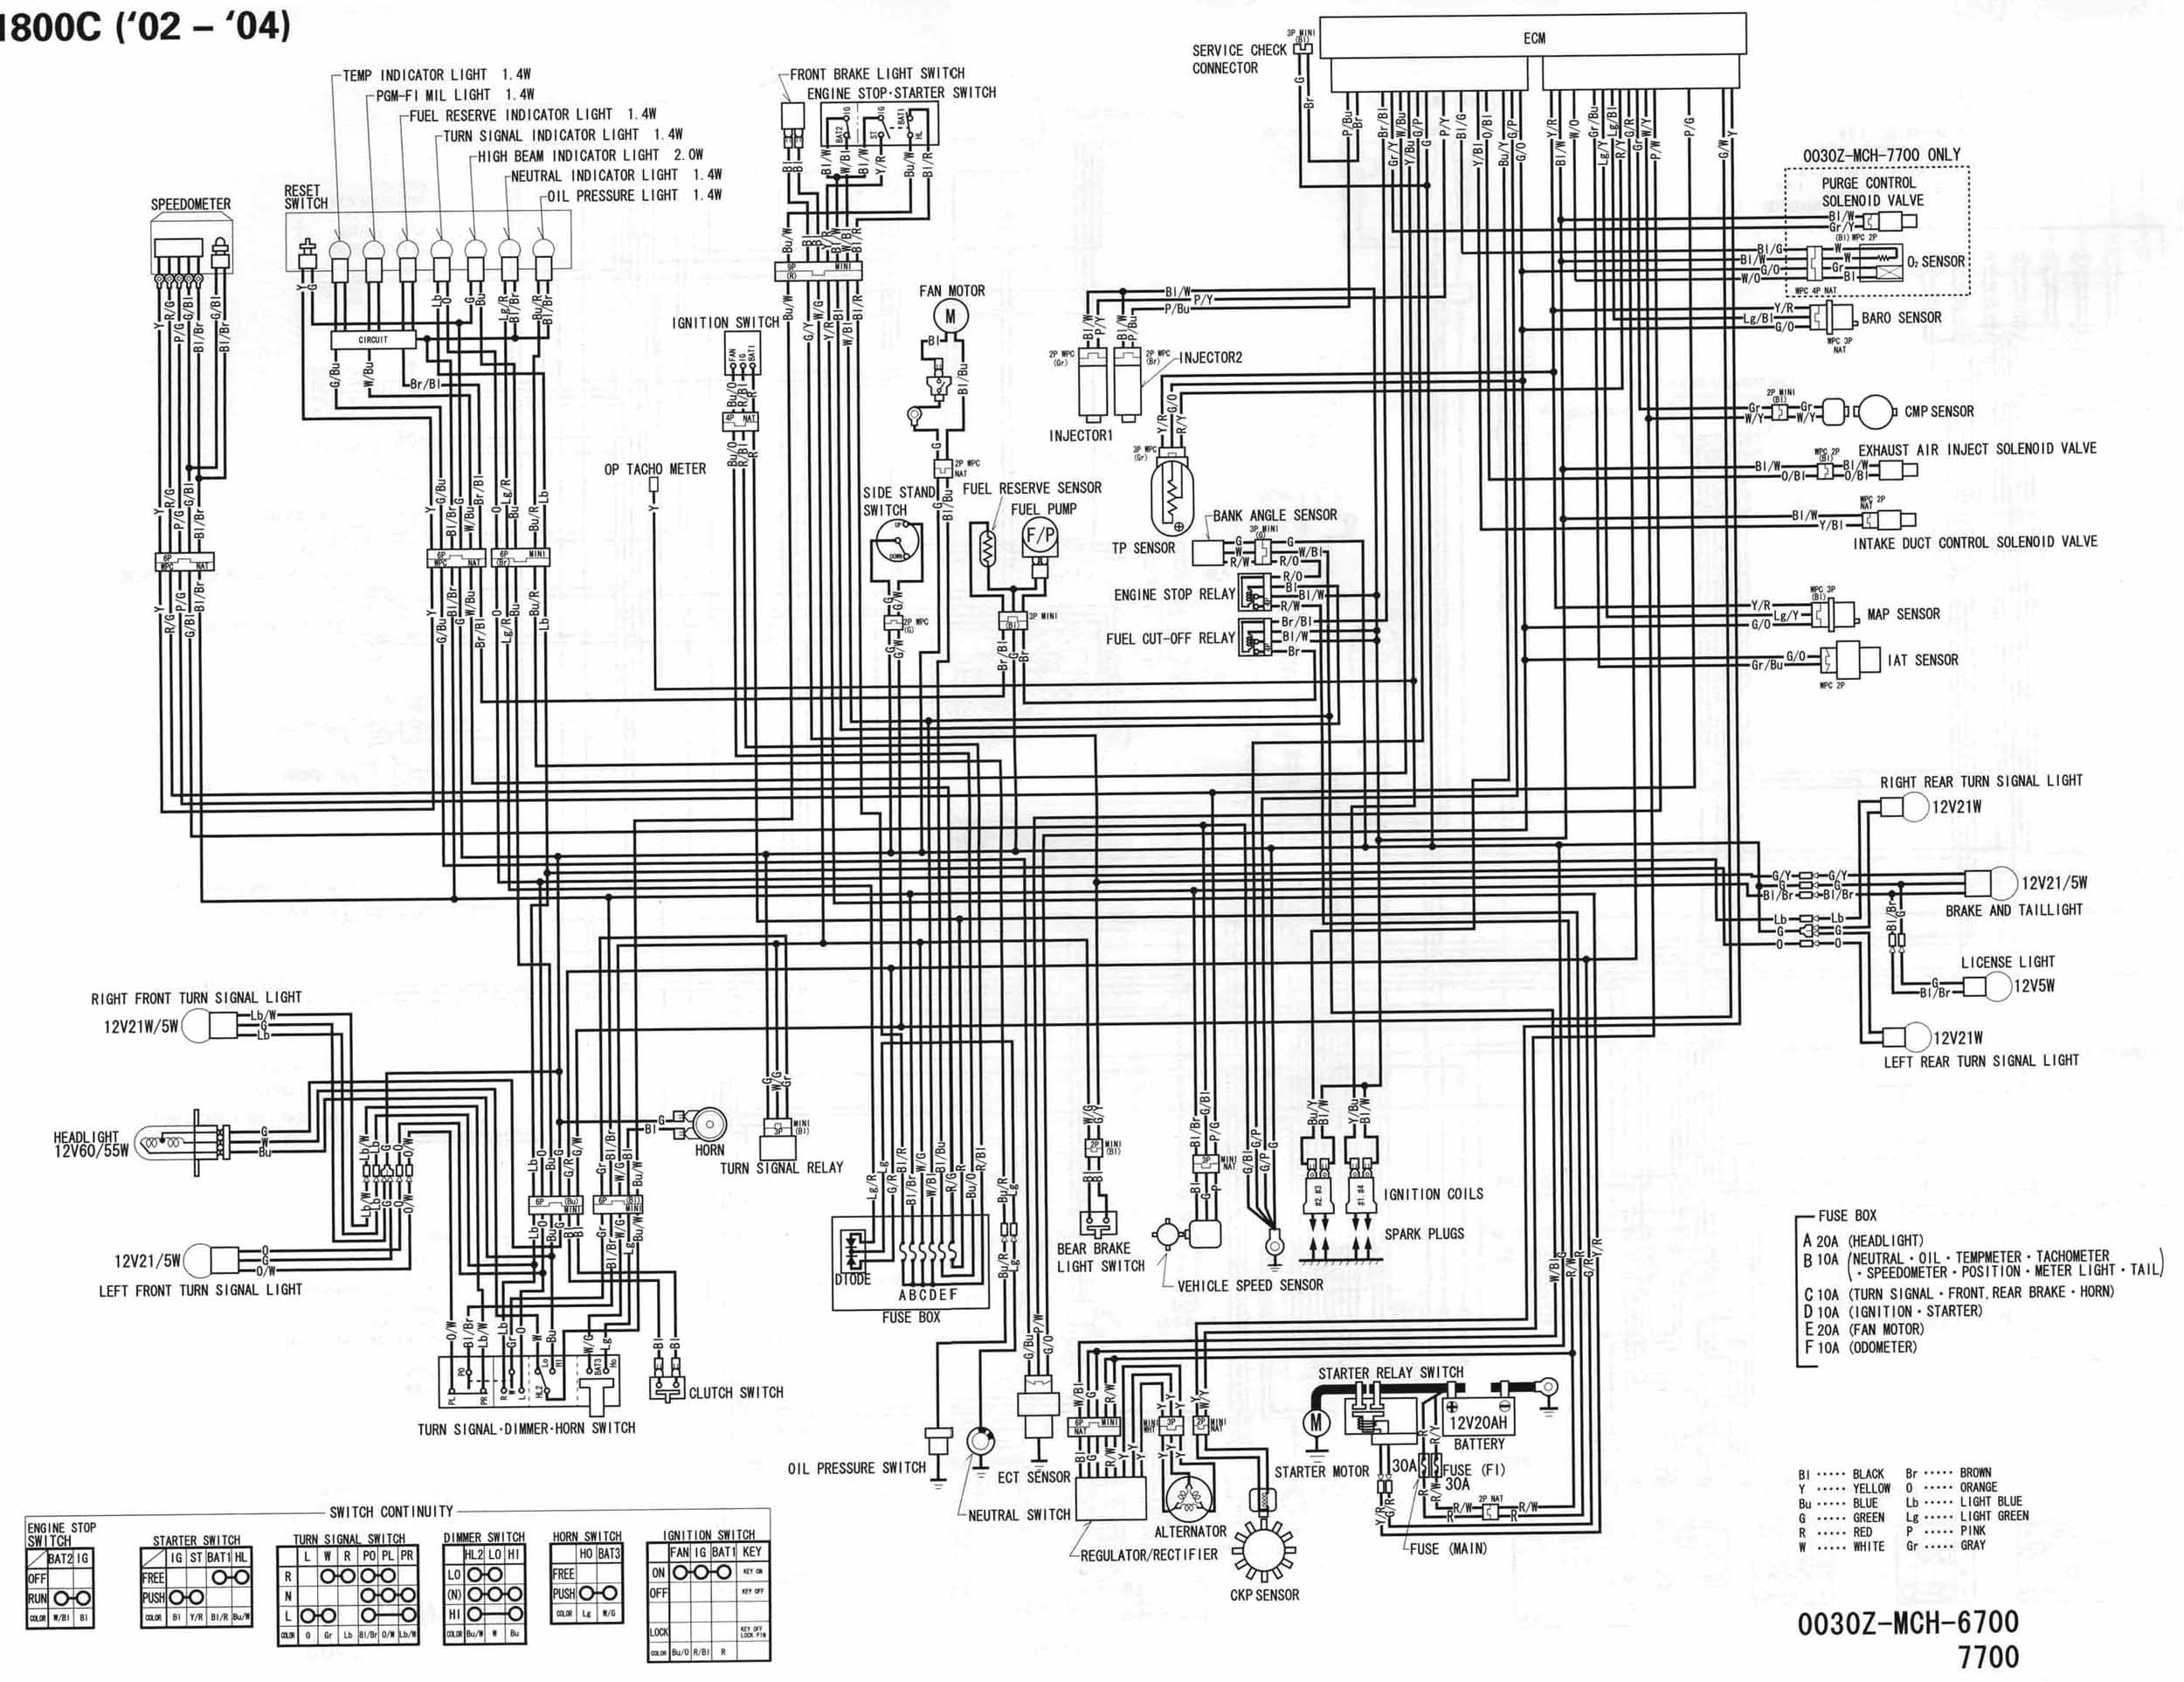 02 04_VTX1800_C_schematic motorcycle wire schematics bareass choppers motorcycle tech pages 2003 Honda Element Engine Harness at eliteediting.co